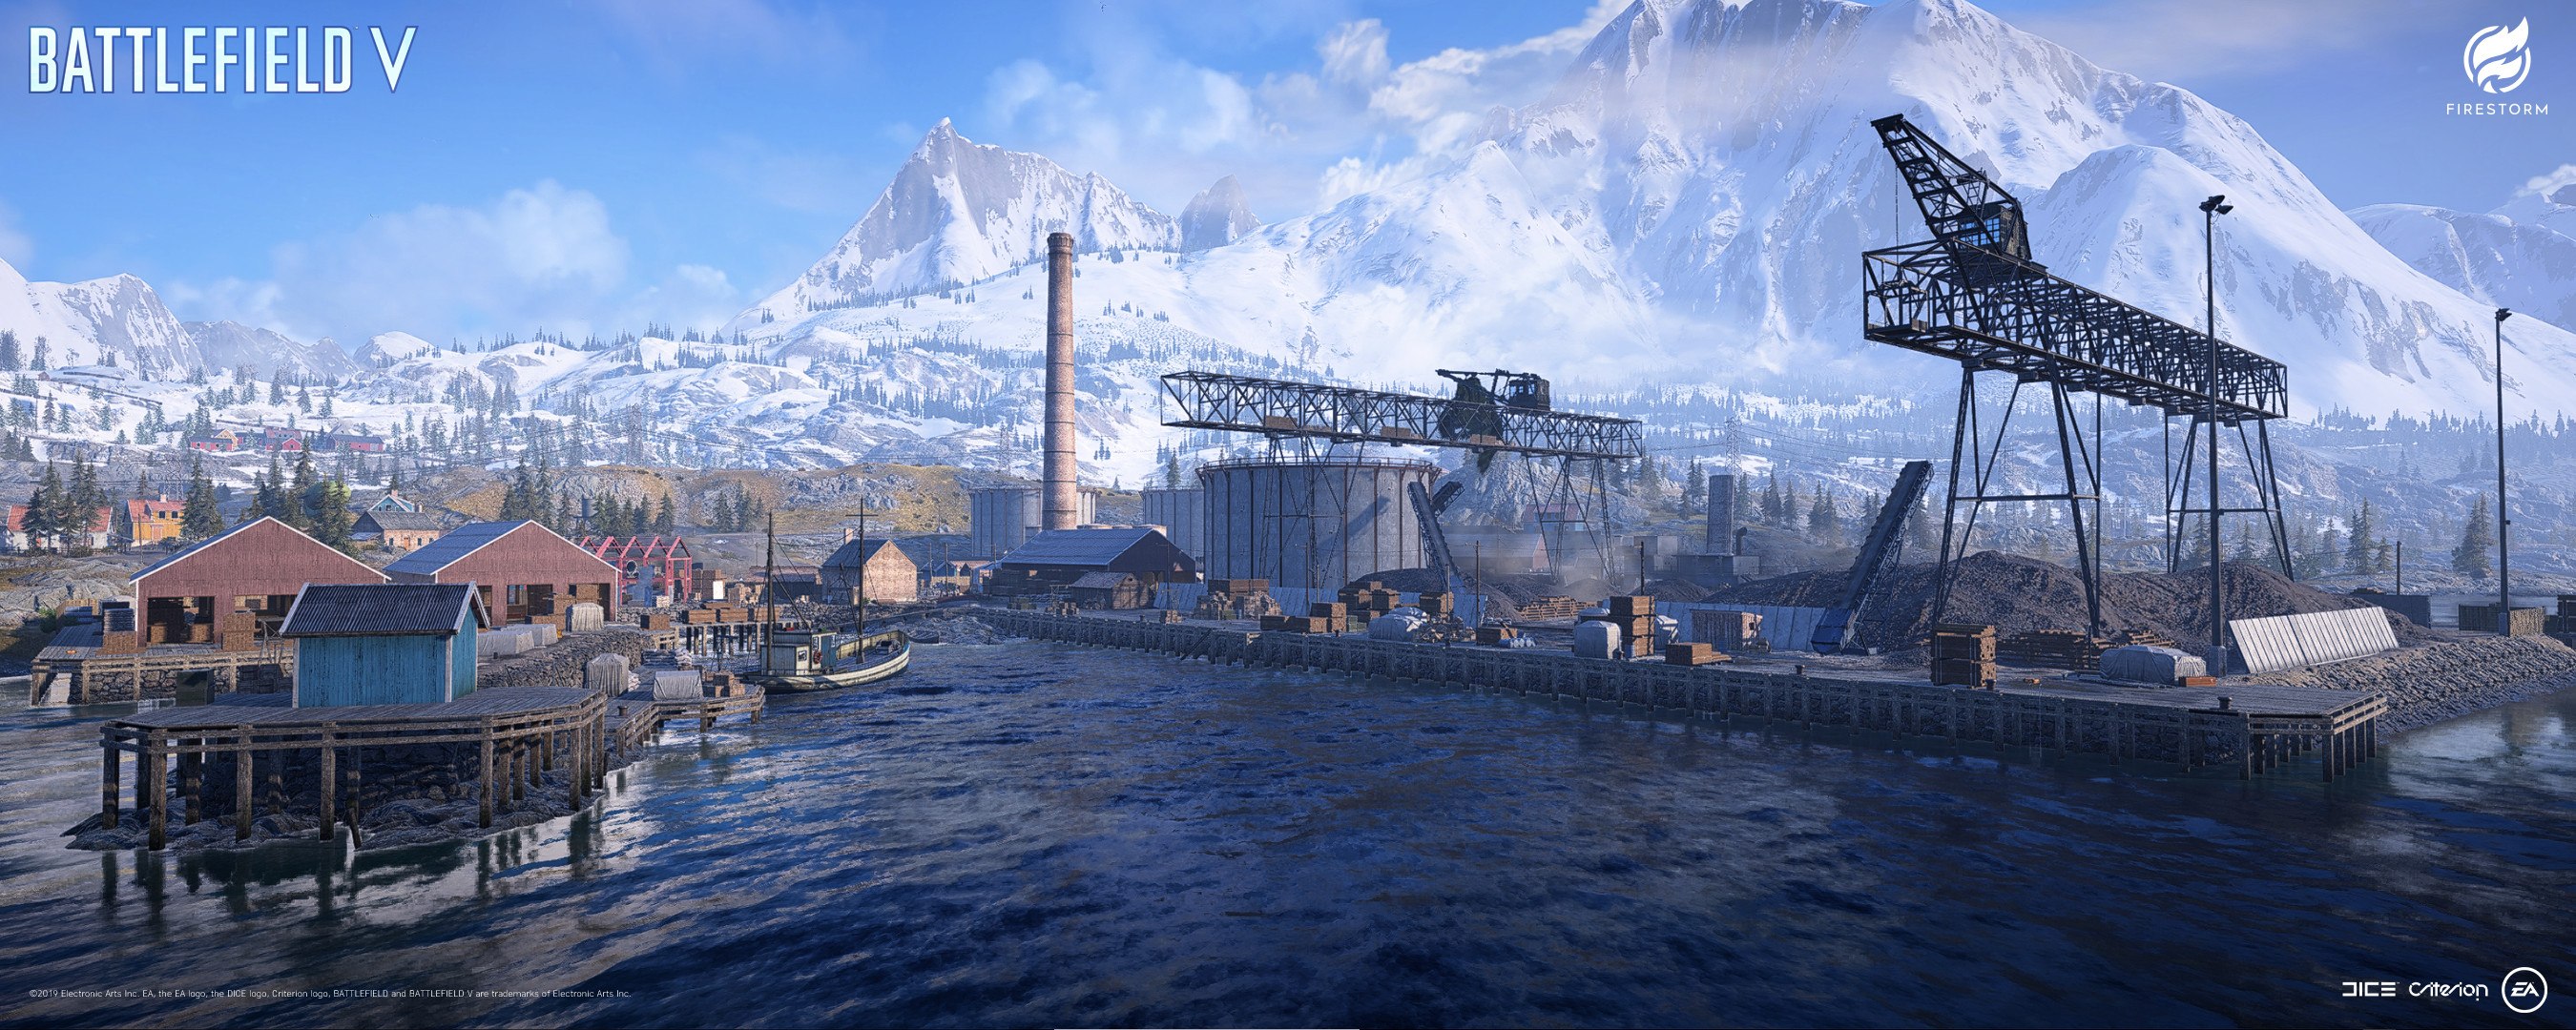 BATTLEFIELD V: FIRESTORM – Halvøy Level Art